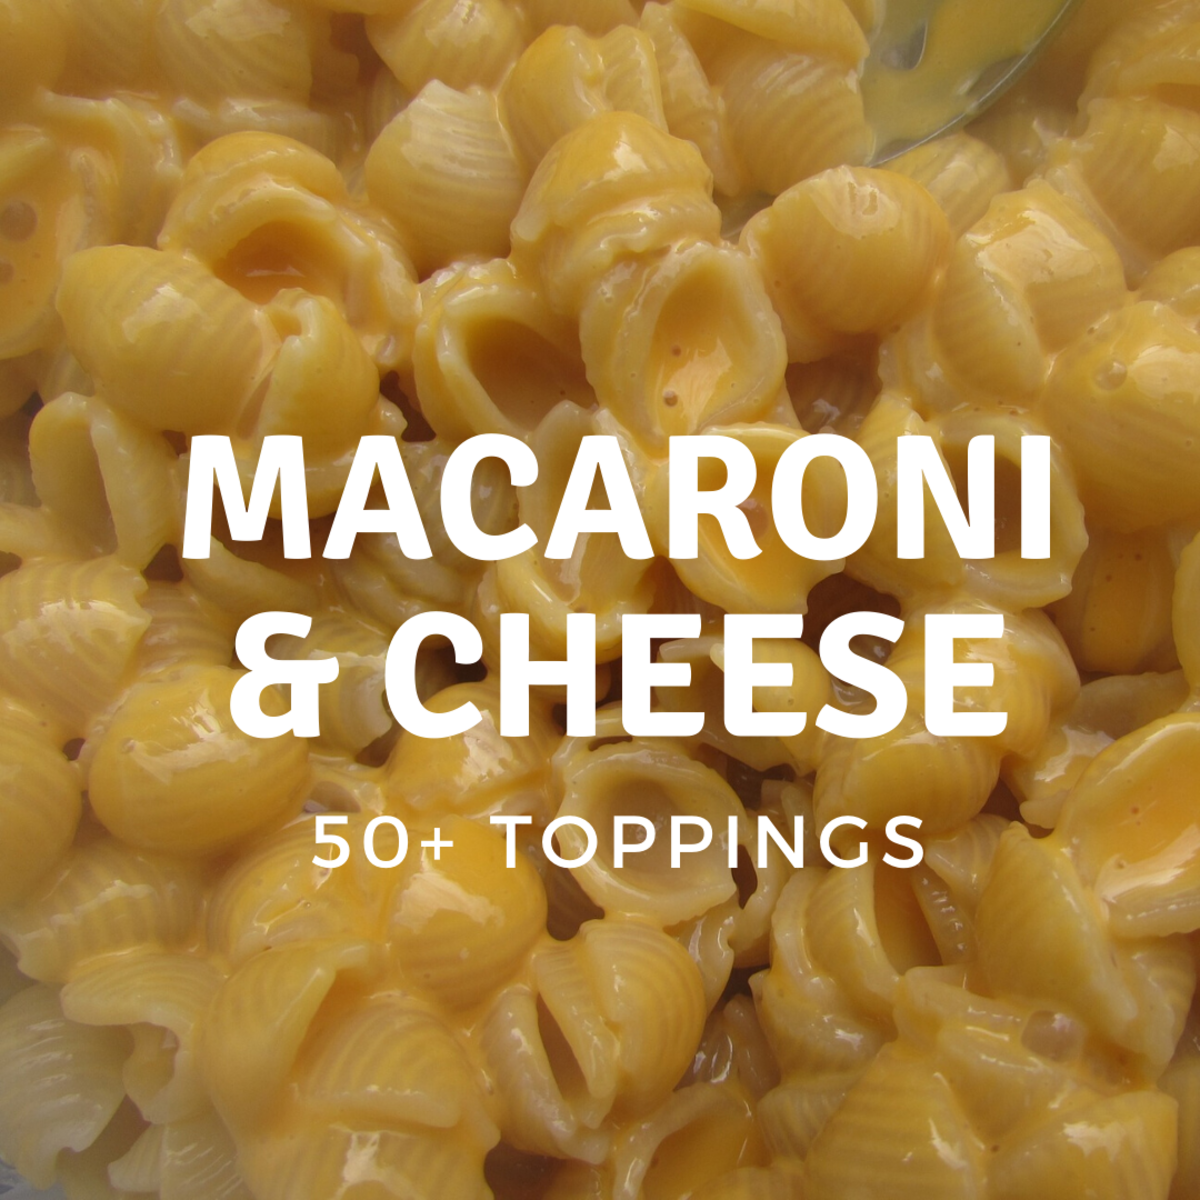 50+ Macaroni And Cheese Topping Ideas Plus 4 Great Recipes